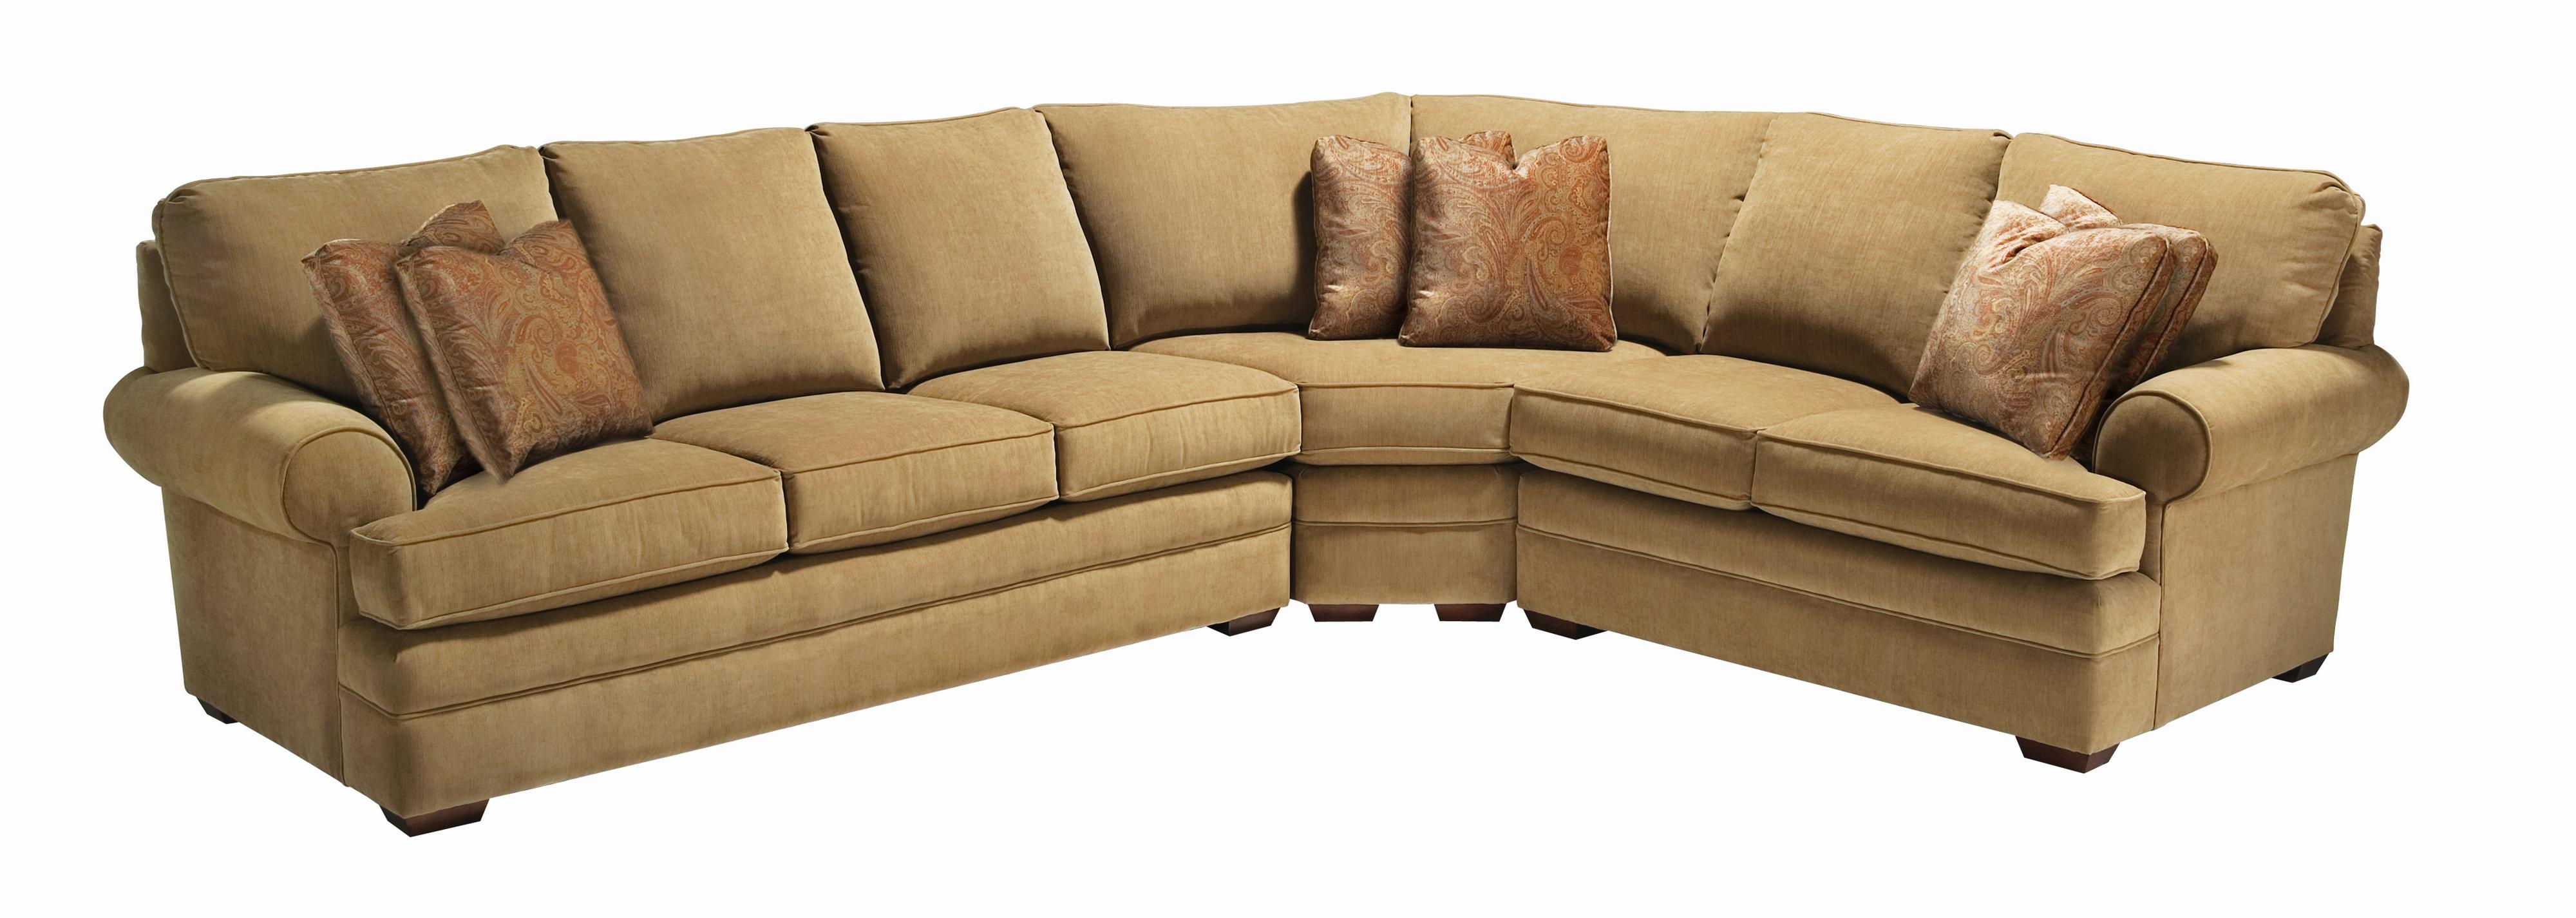 Custom Select Upholstery Custom 3-Piece Sectional Sofa by Kincaid Furniture at Johnny Janosik